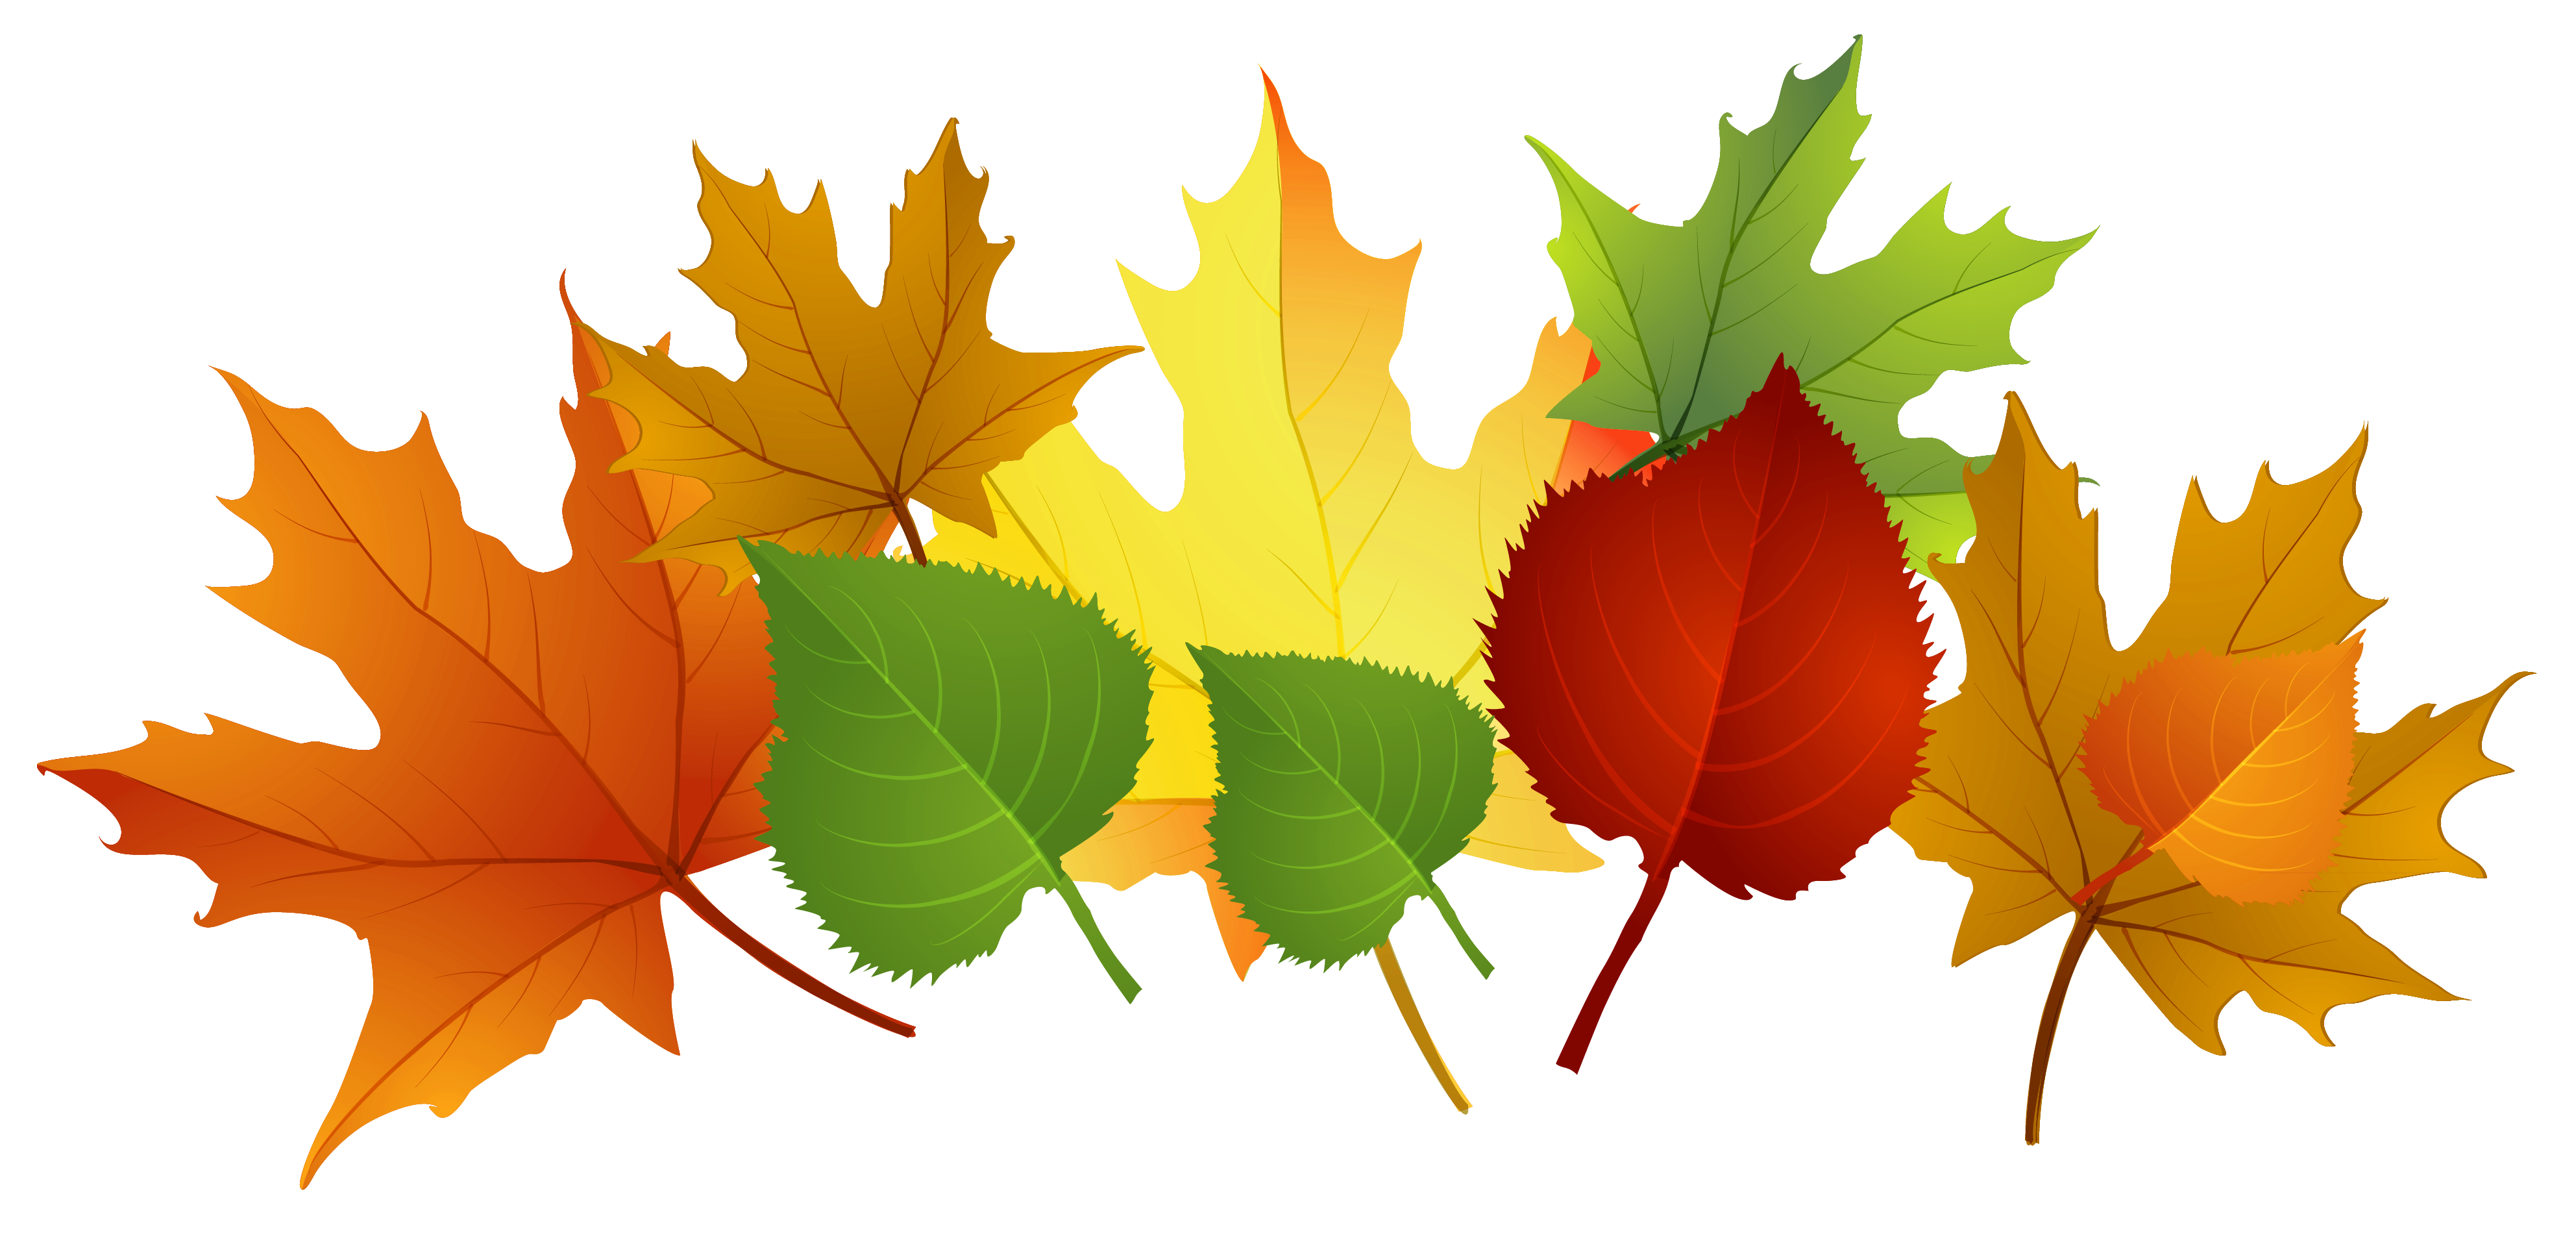 Fall Clip Art Images Free Cliparts Co-Fall Clip Art Images Free Cliparts Co-14